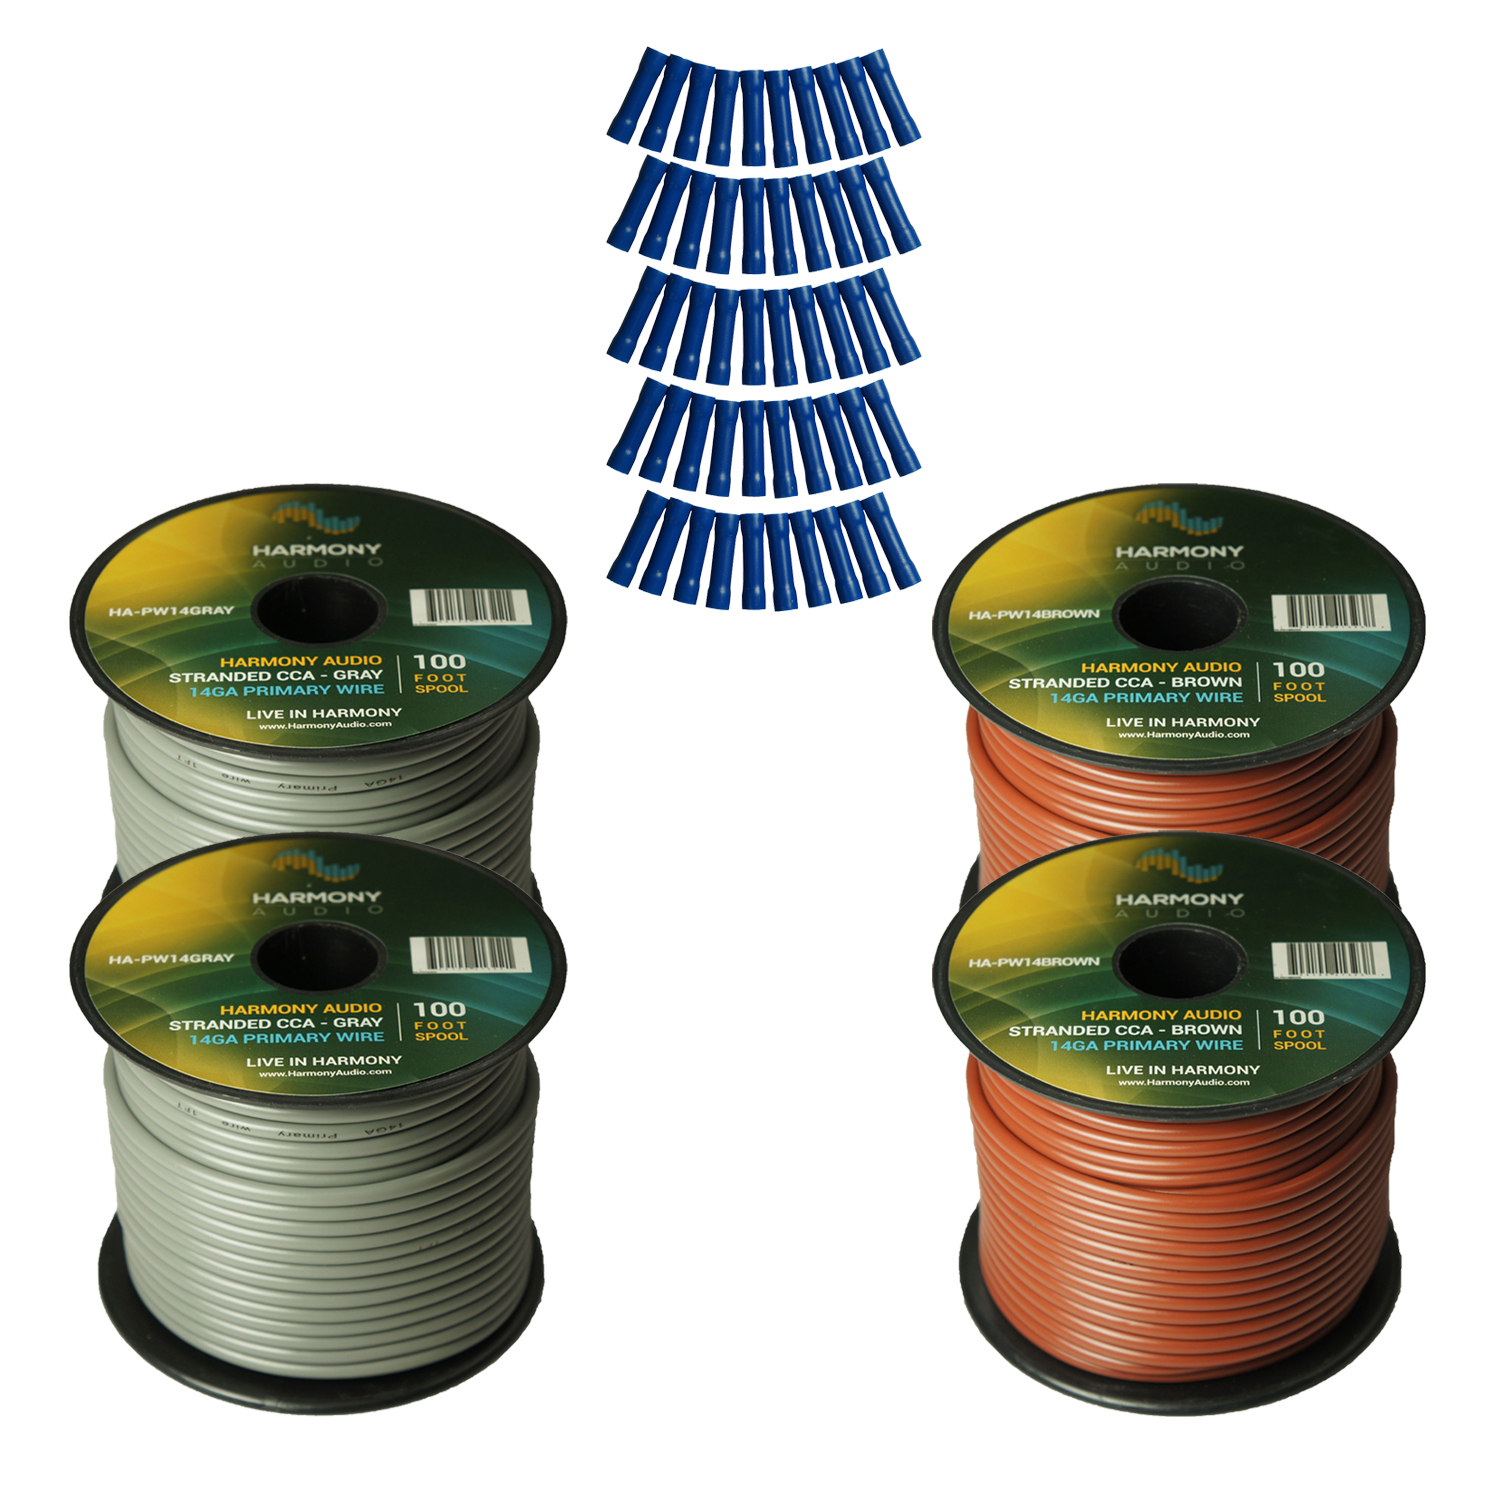 Harmony Audio Primary Single Conductor 14 Gauge Power or Ground Wire - 4 Rolls - 400 Feet - Gray & Brown for Car Audio / Trailer / Model Train / Remote